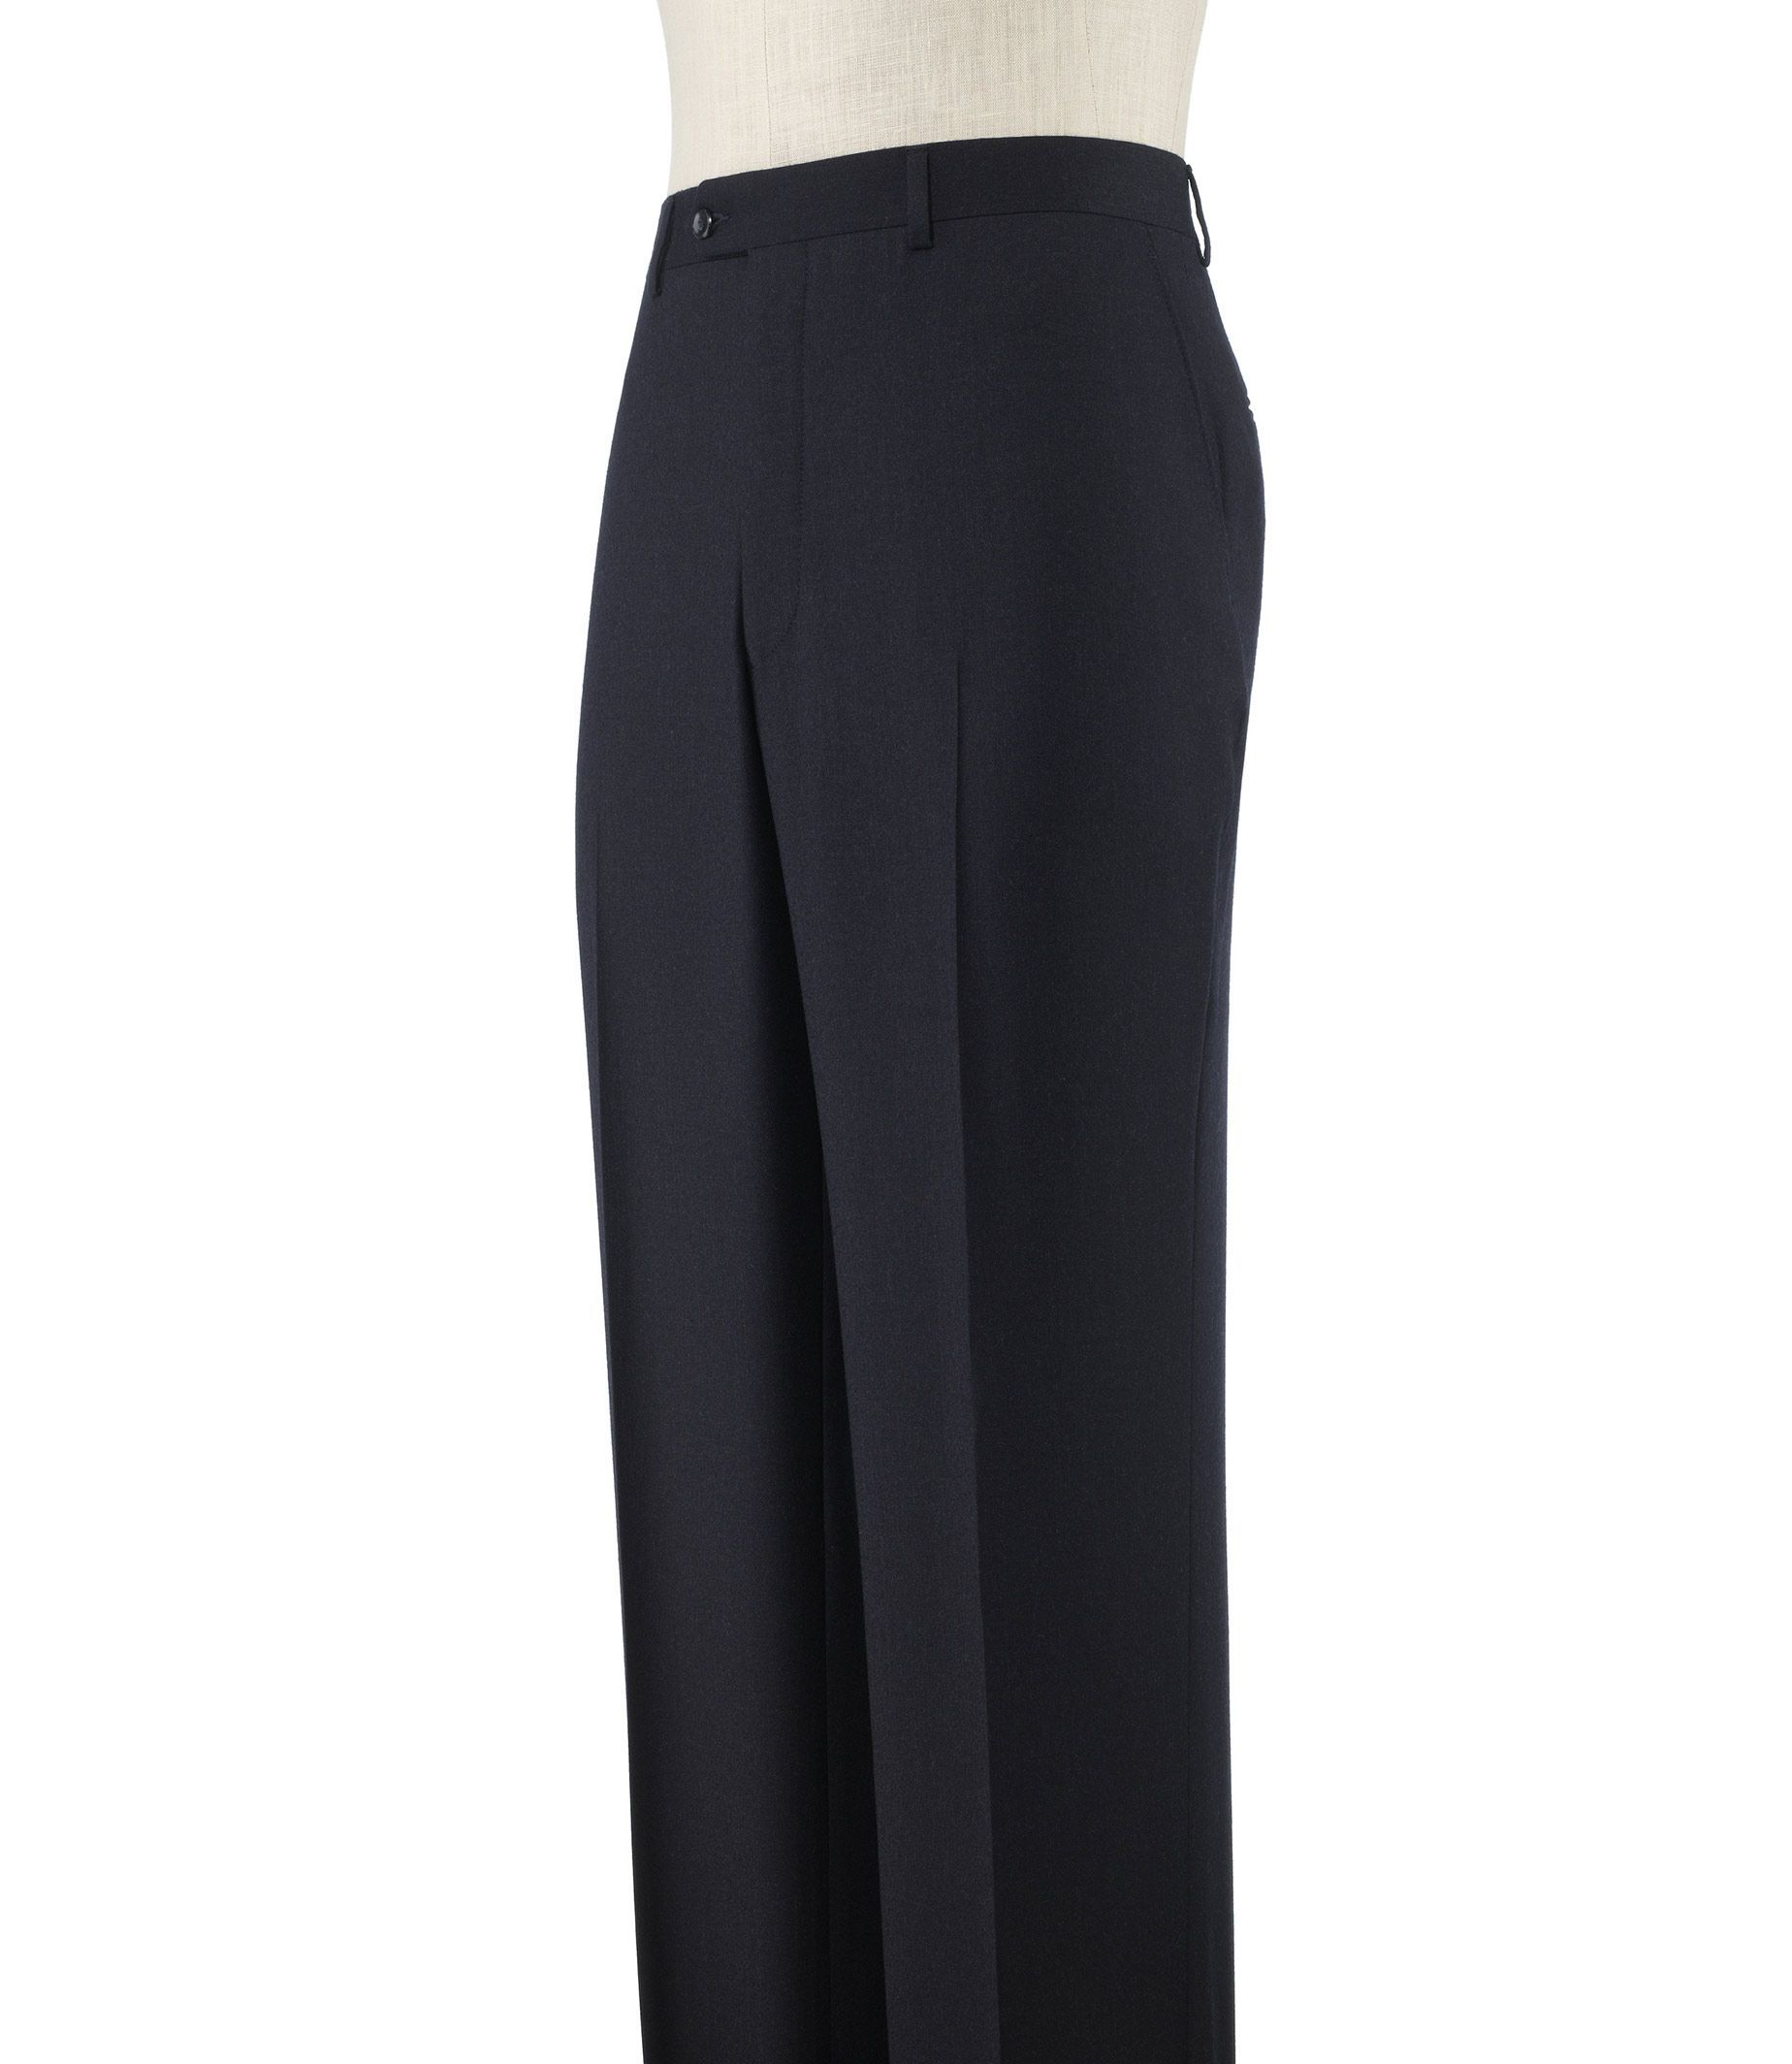 Executive Tailored Fit Plain Front Wool/Cashmere Trousers